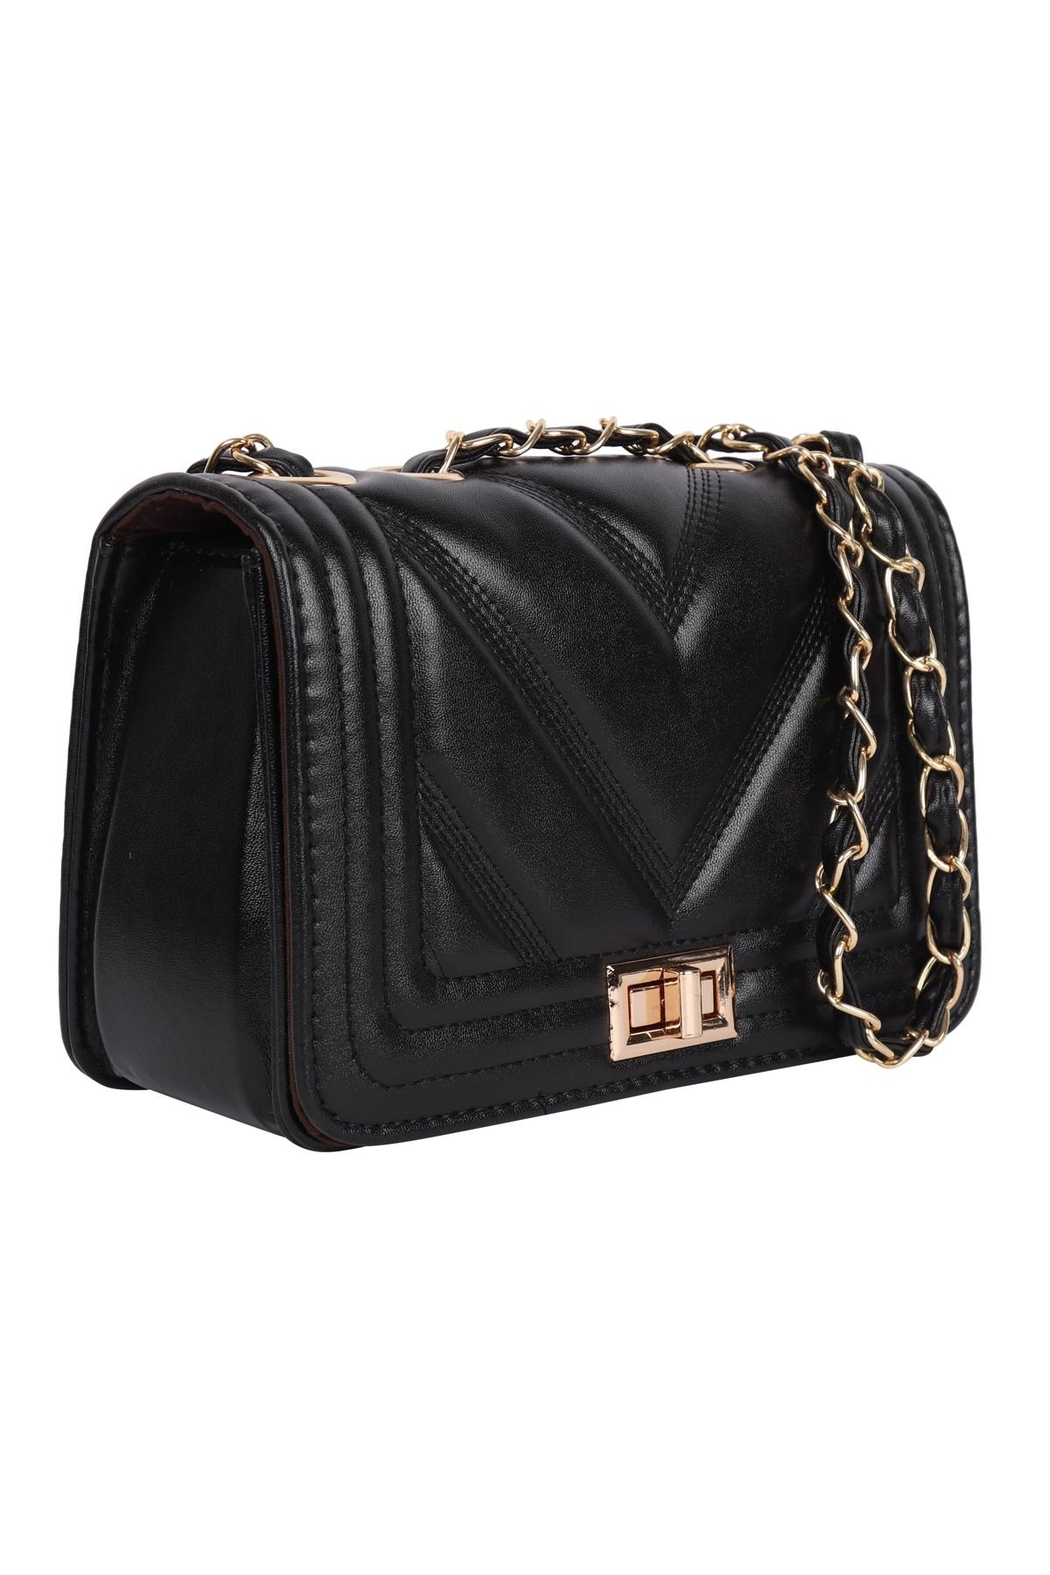 Riah Fashion Quilted-Designe-Leather-Fahion-Bag-Cross-Body-Bag - Front Full Image